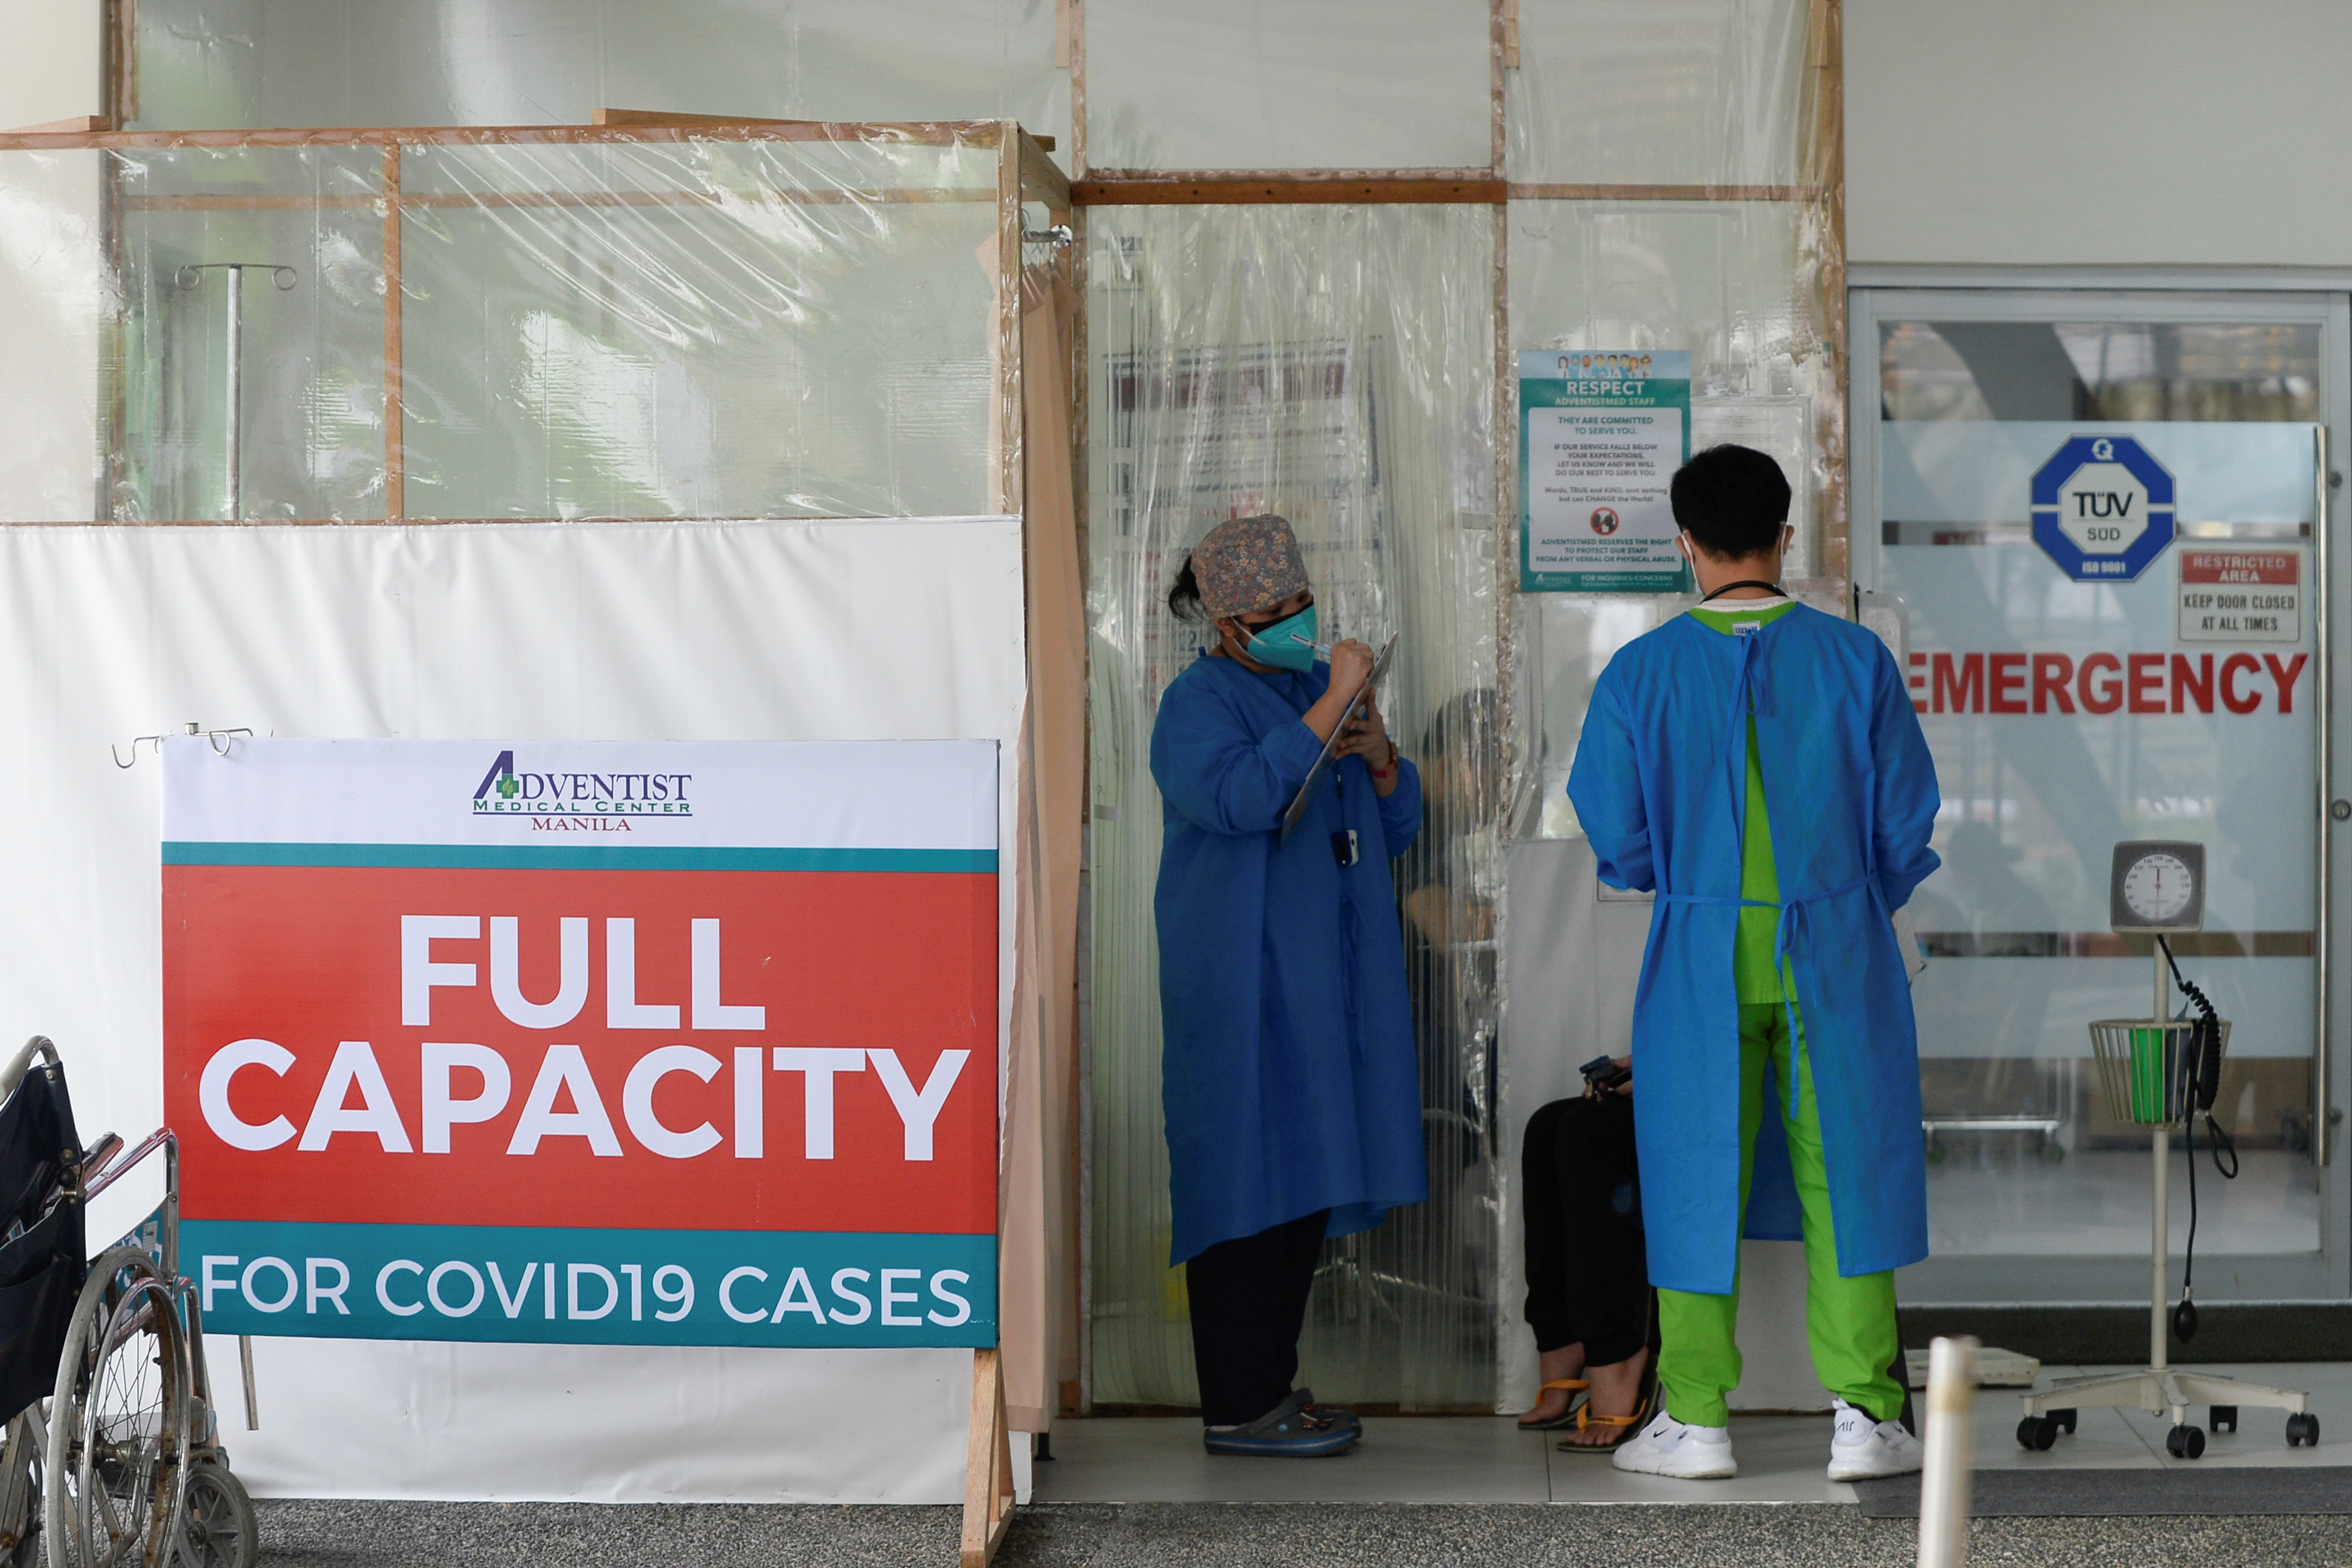 Health workers assess a patient outside the emergency room at the Adventist Medical Center, where a sign indicating that the hospital's coronavirus disease (COVID-19) facility is at full capacity is displayed, in Pasay, Philippines, April 9, 2021. REUTERS/Lisa Marie David